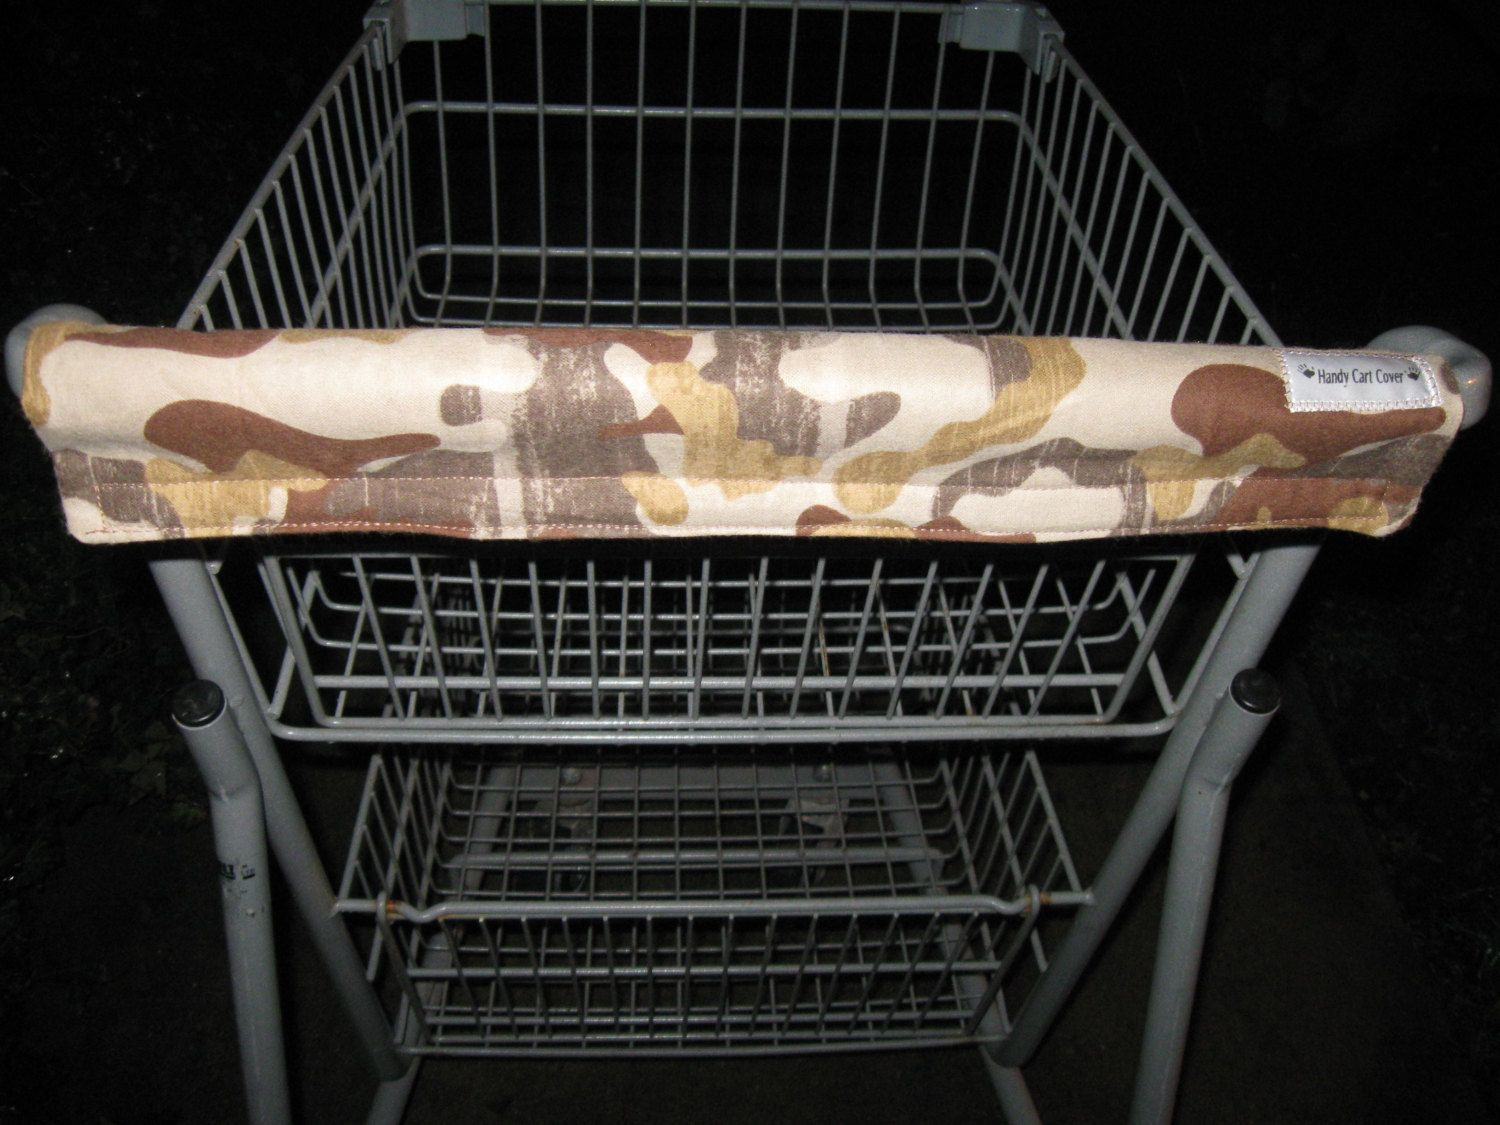 Shopping Cart Cover Cart Handle Cover Shopping Cart Covers Etsy Shopping Cart Cover Cart Cover Grocery Basket